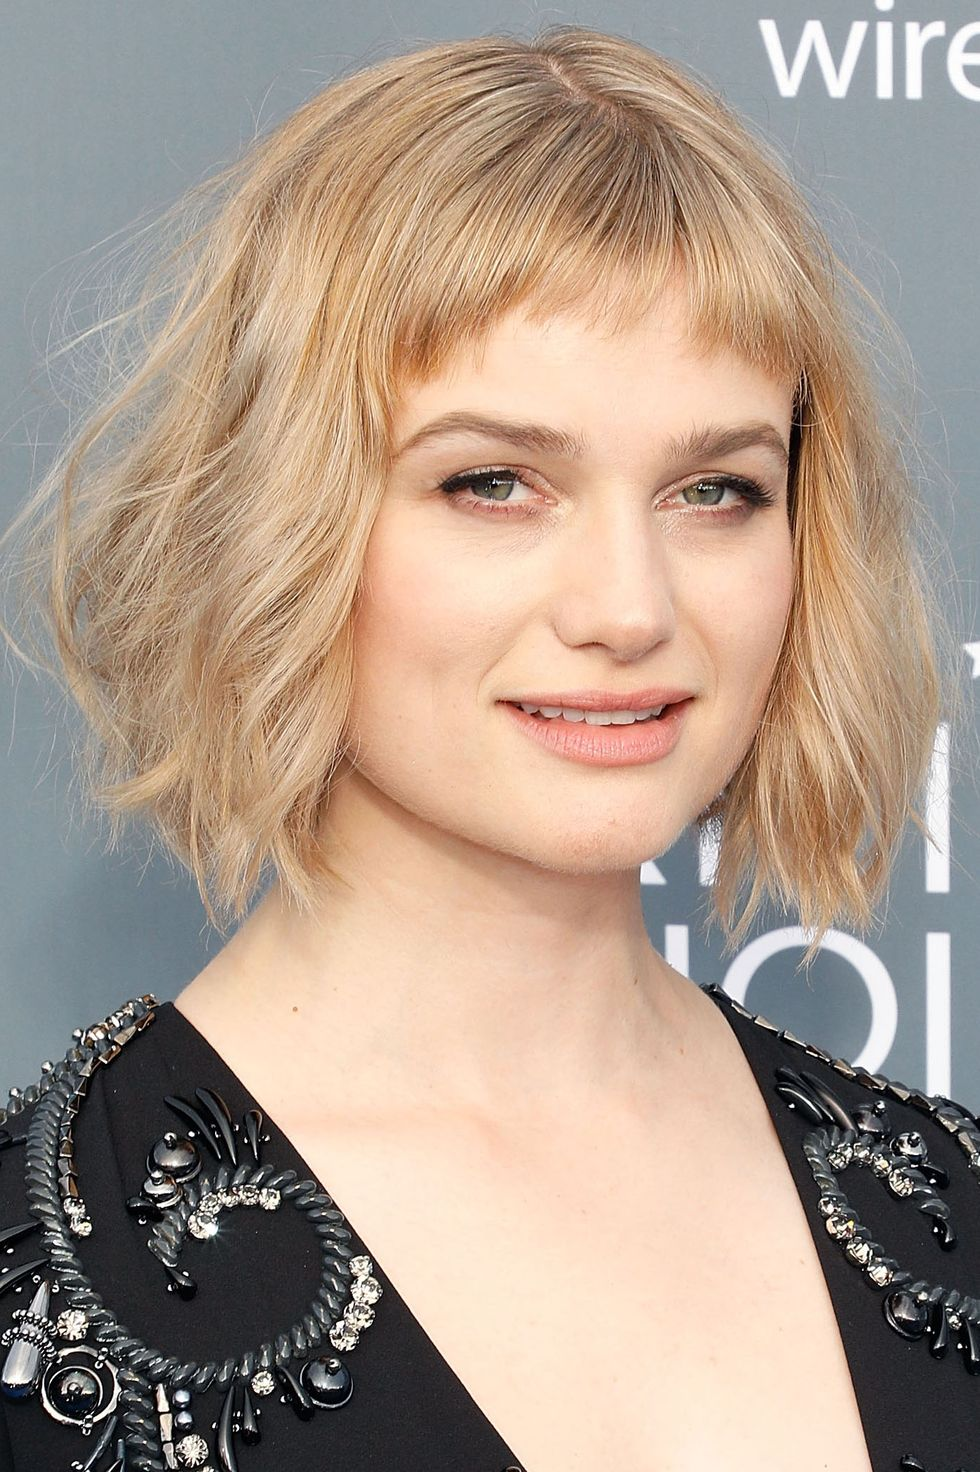 Cutting-bangs-Uneven-Baby-Bangs-1 Hairstyles with bangs: How to cut bangs as a professional?